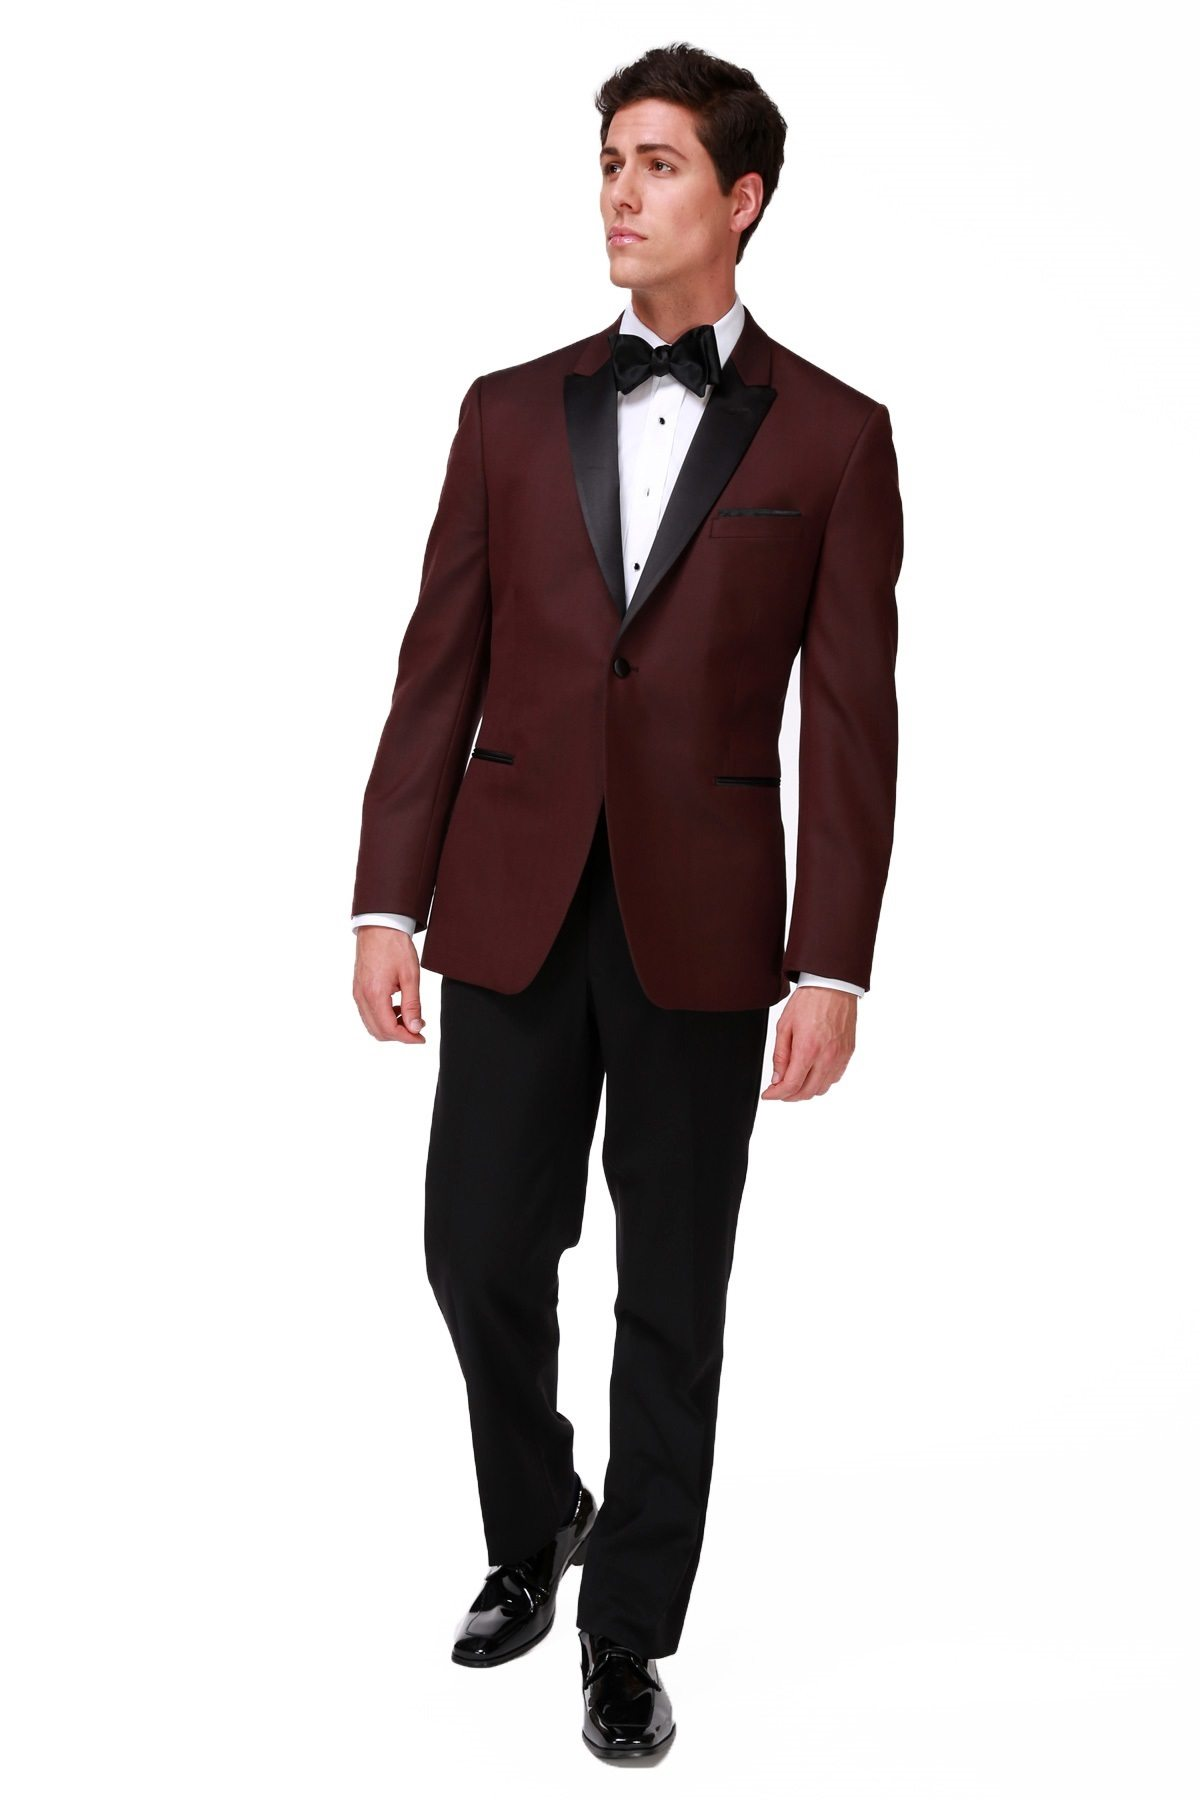 Black tuxedos for prom